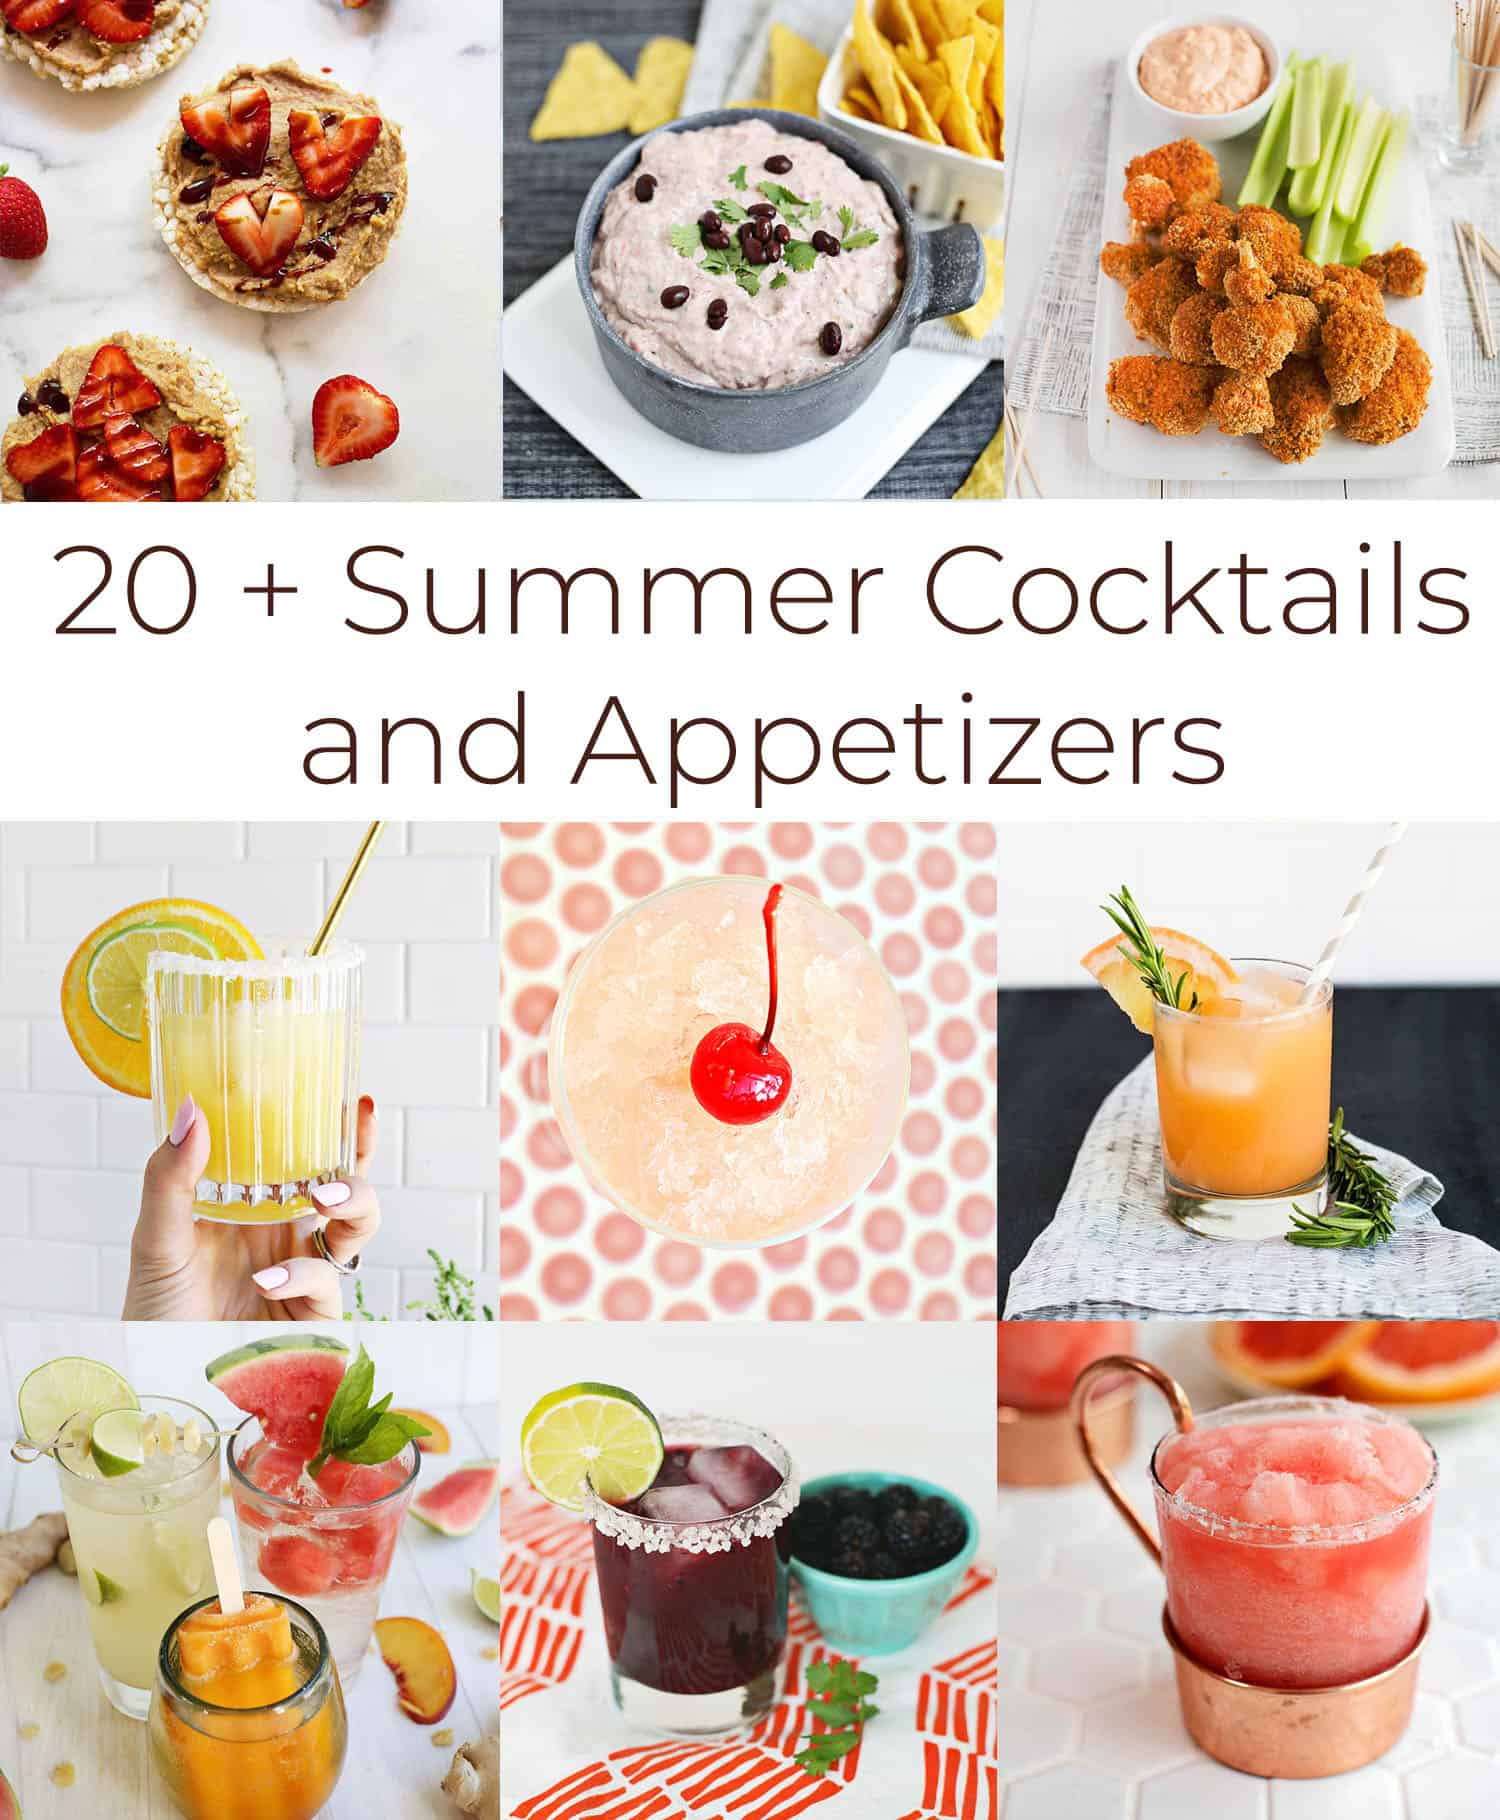 20+ Easy Summer Cocktails and Appetizers